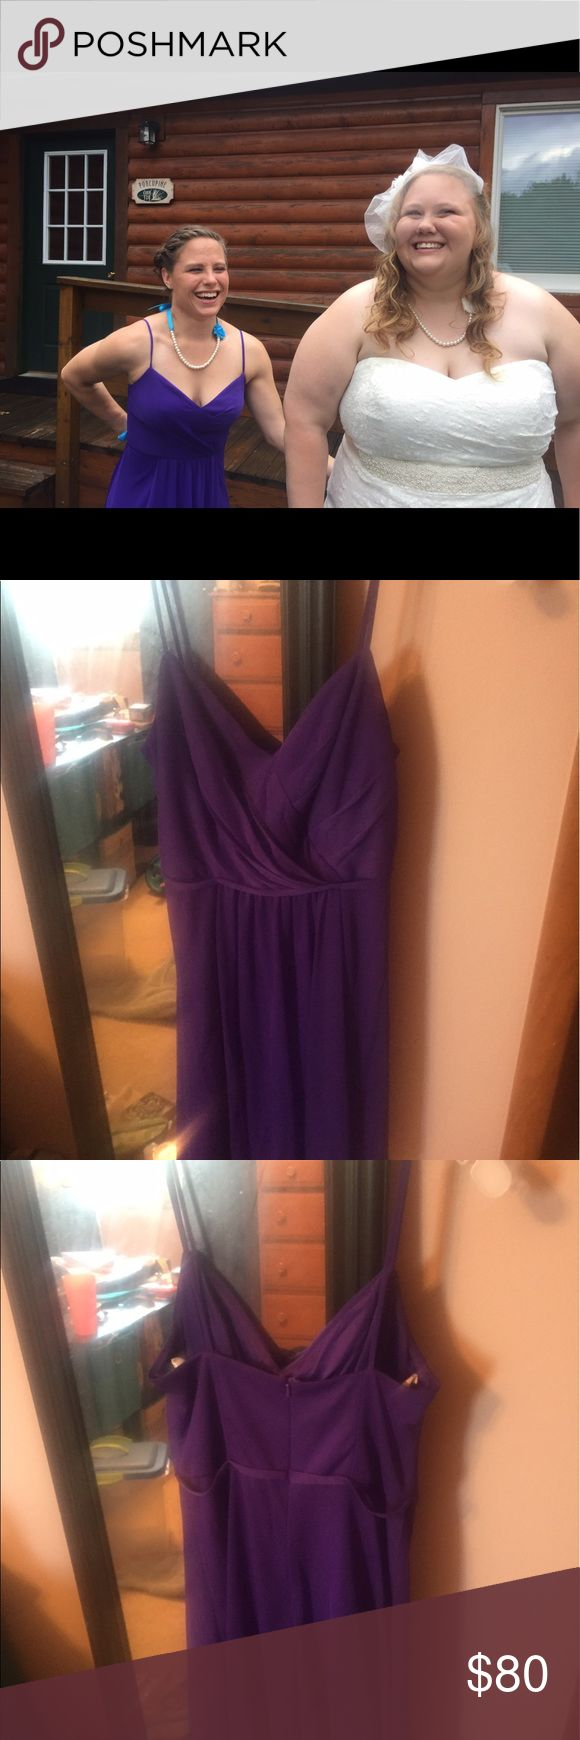 Purple David's Bridal bridesmaid party dress Size 2. I'm 5'0 and a 34C (see first picture). I had the straps shortened a tiny bit. Ask for measurements! I'm hoping this can go to another bridesmaid. I only wore this for about 8 hours! David's Bridal Dresses Midi